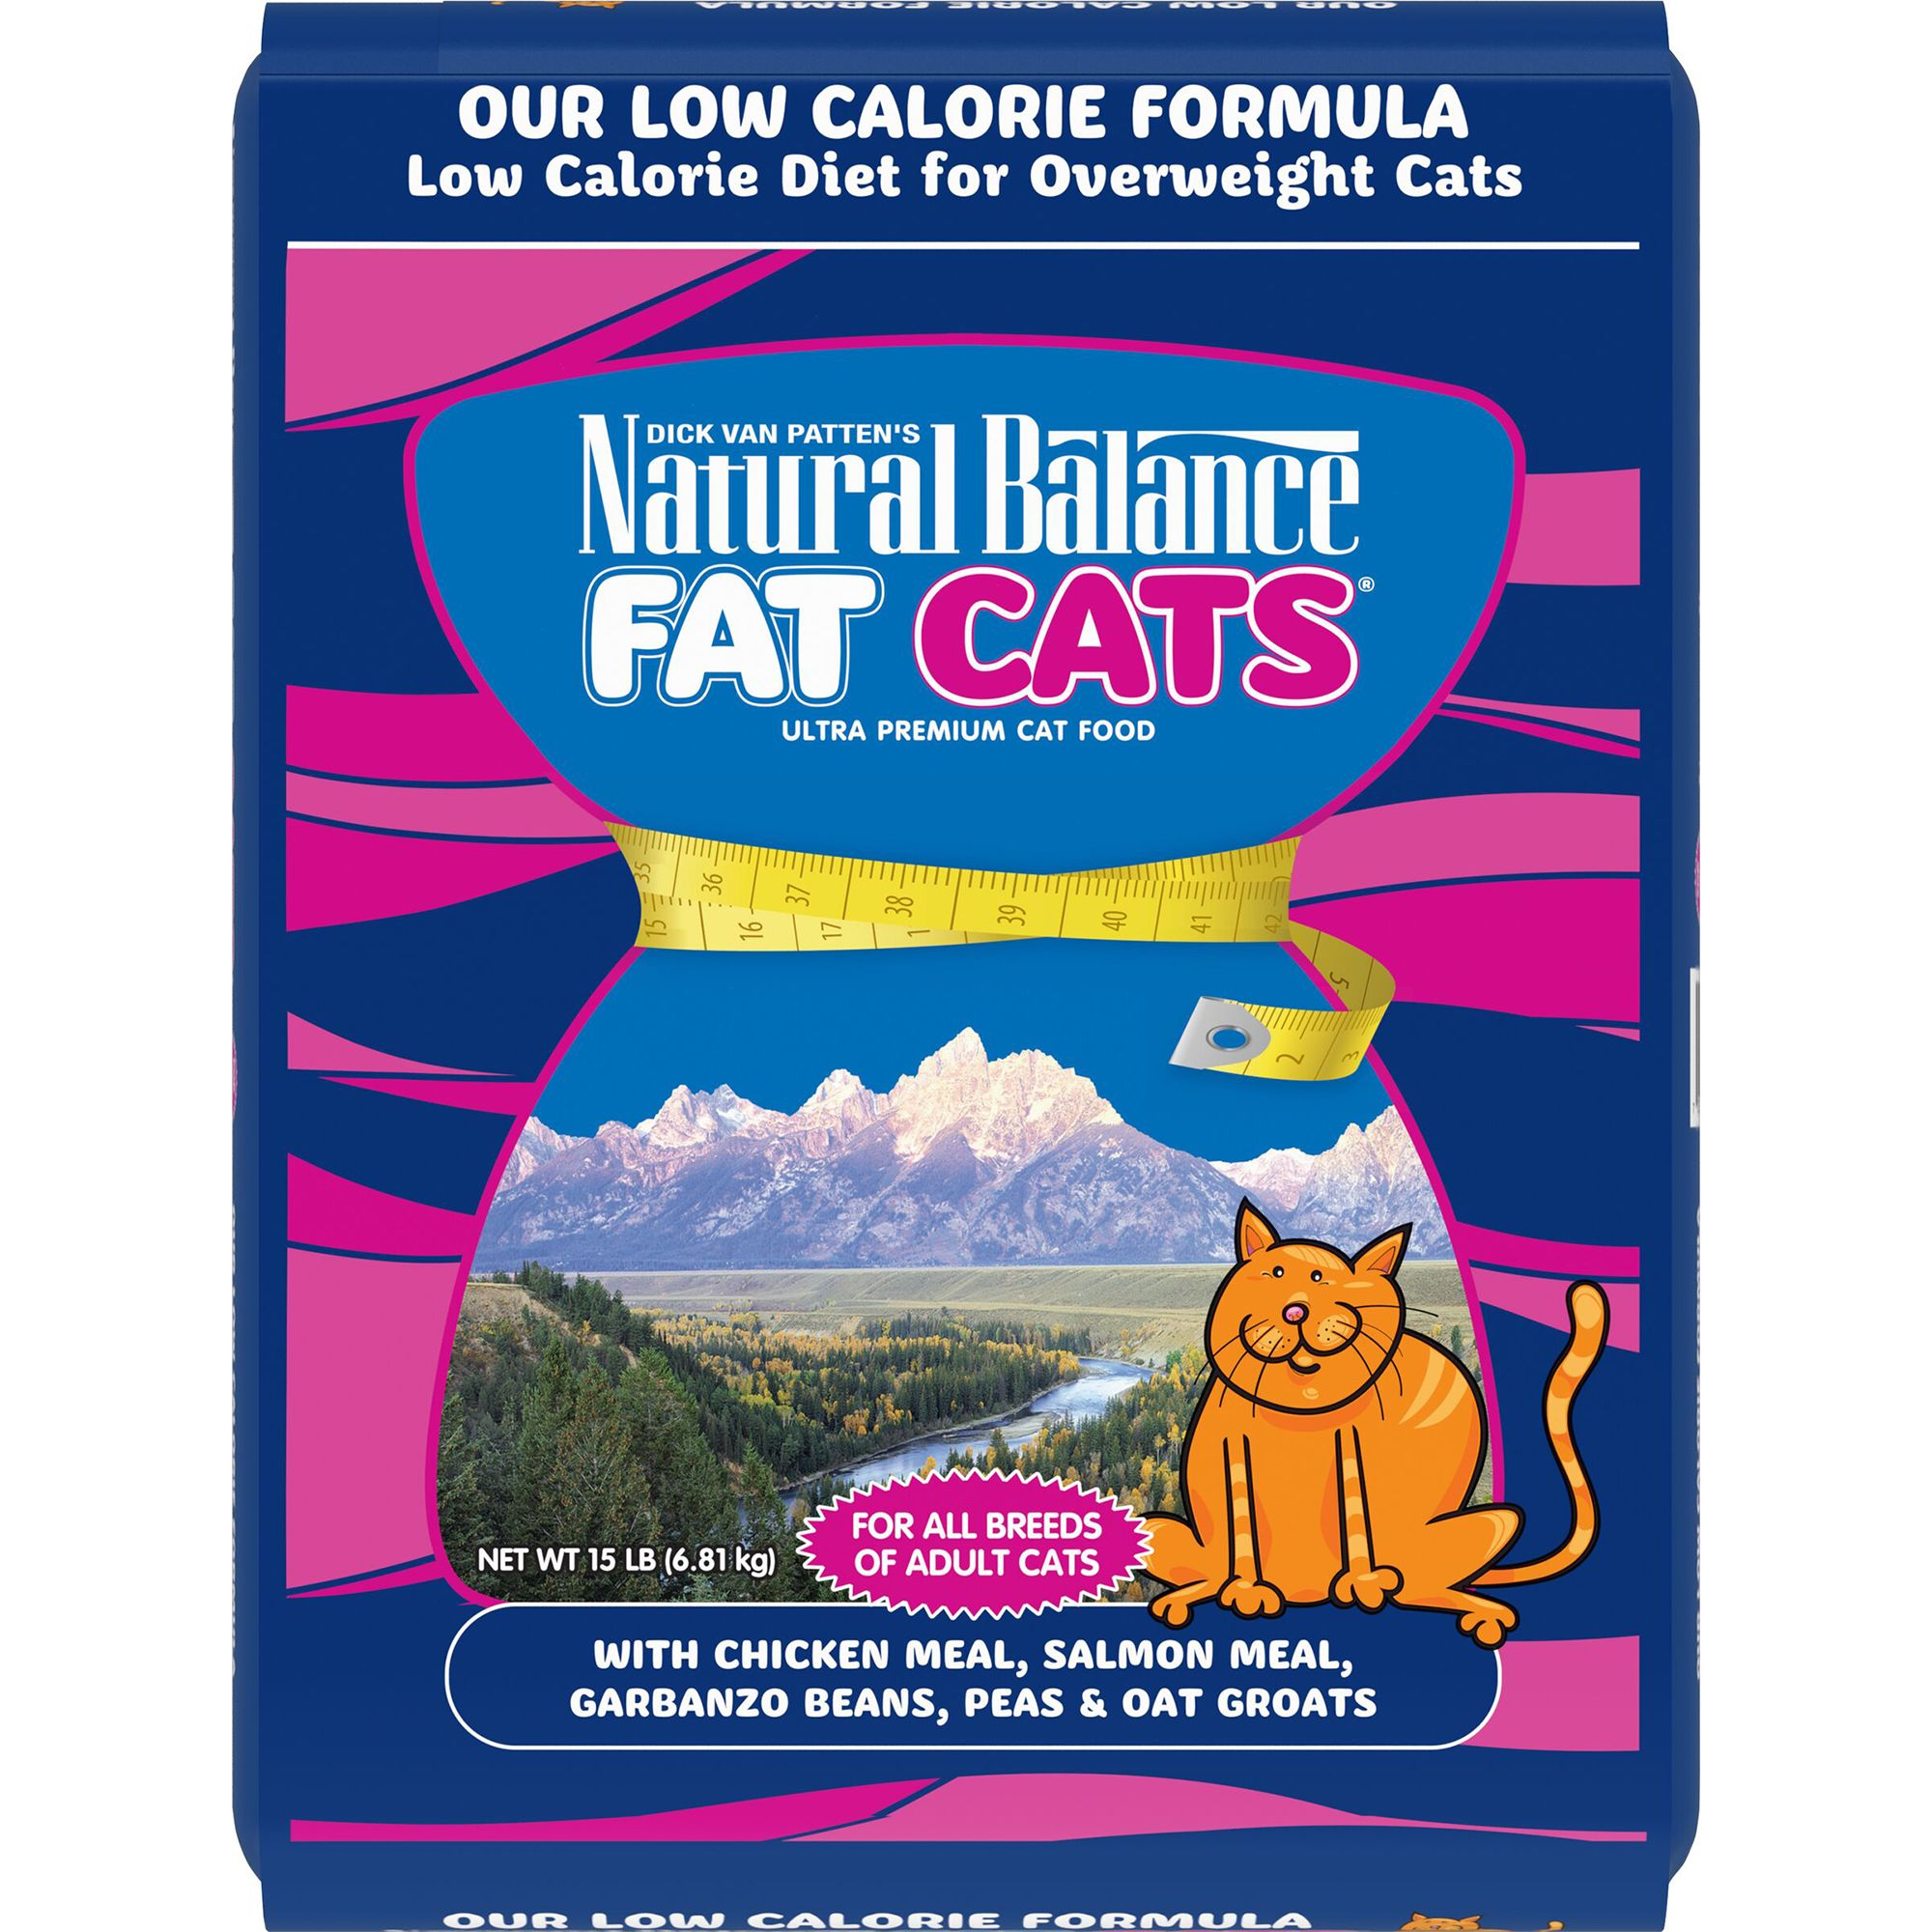 Unstudied Balance Fat Cats Adult Cat Food - Weight Control, Chicken Meal, Salmon Meal and Garbanzo Beans size: 15 Lb, Chicken & Salmon